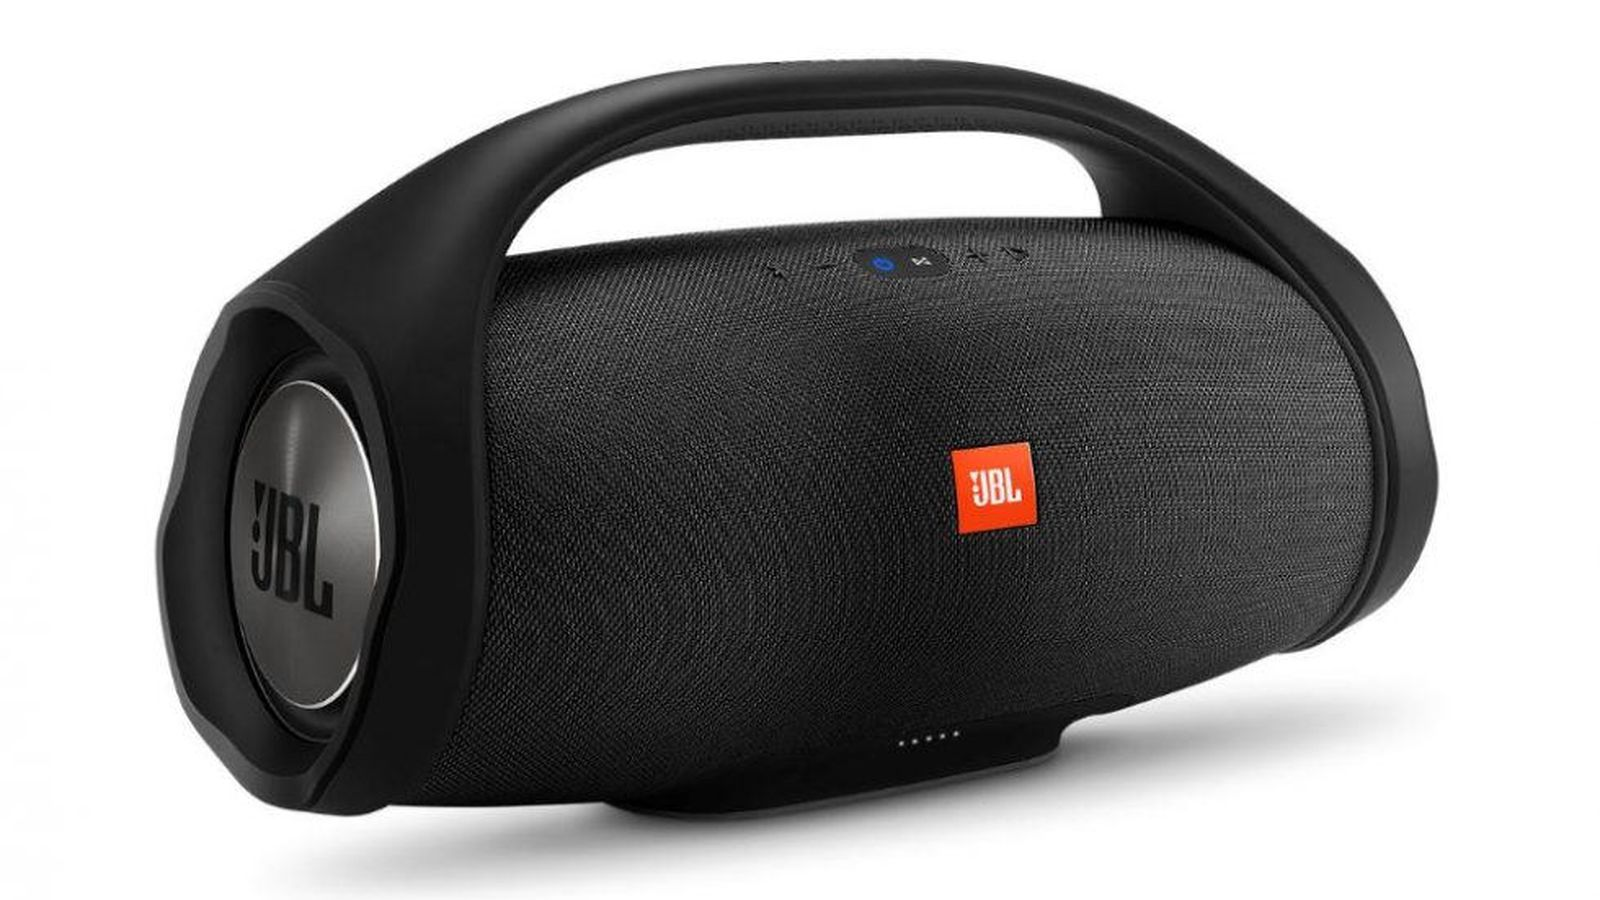 jbl new. jbl\u0027s next boombox is waterproof and has 24 hours of battery life - the verge jbl new l